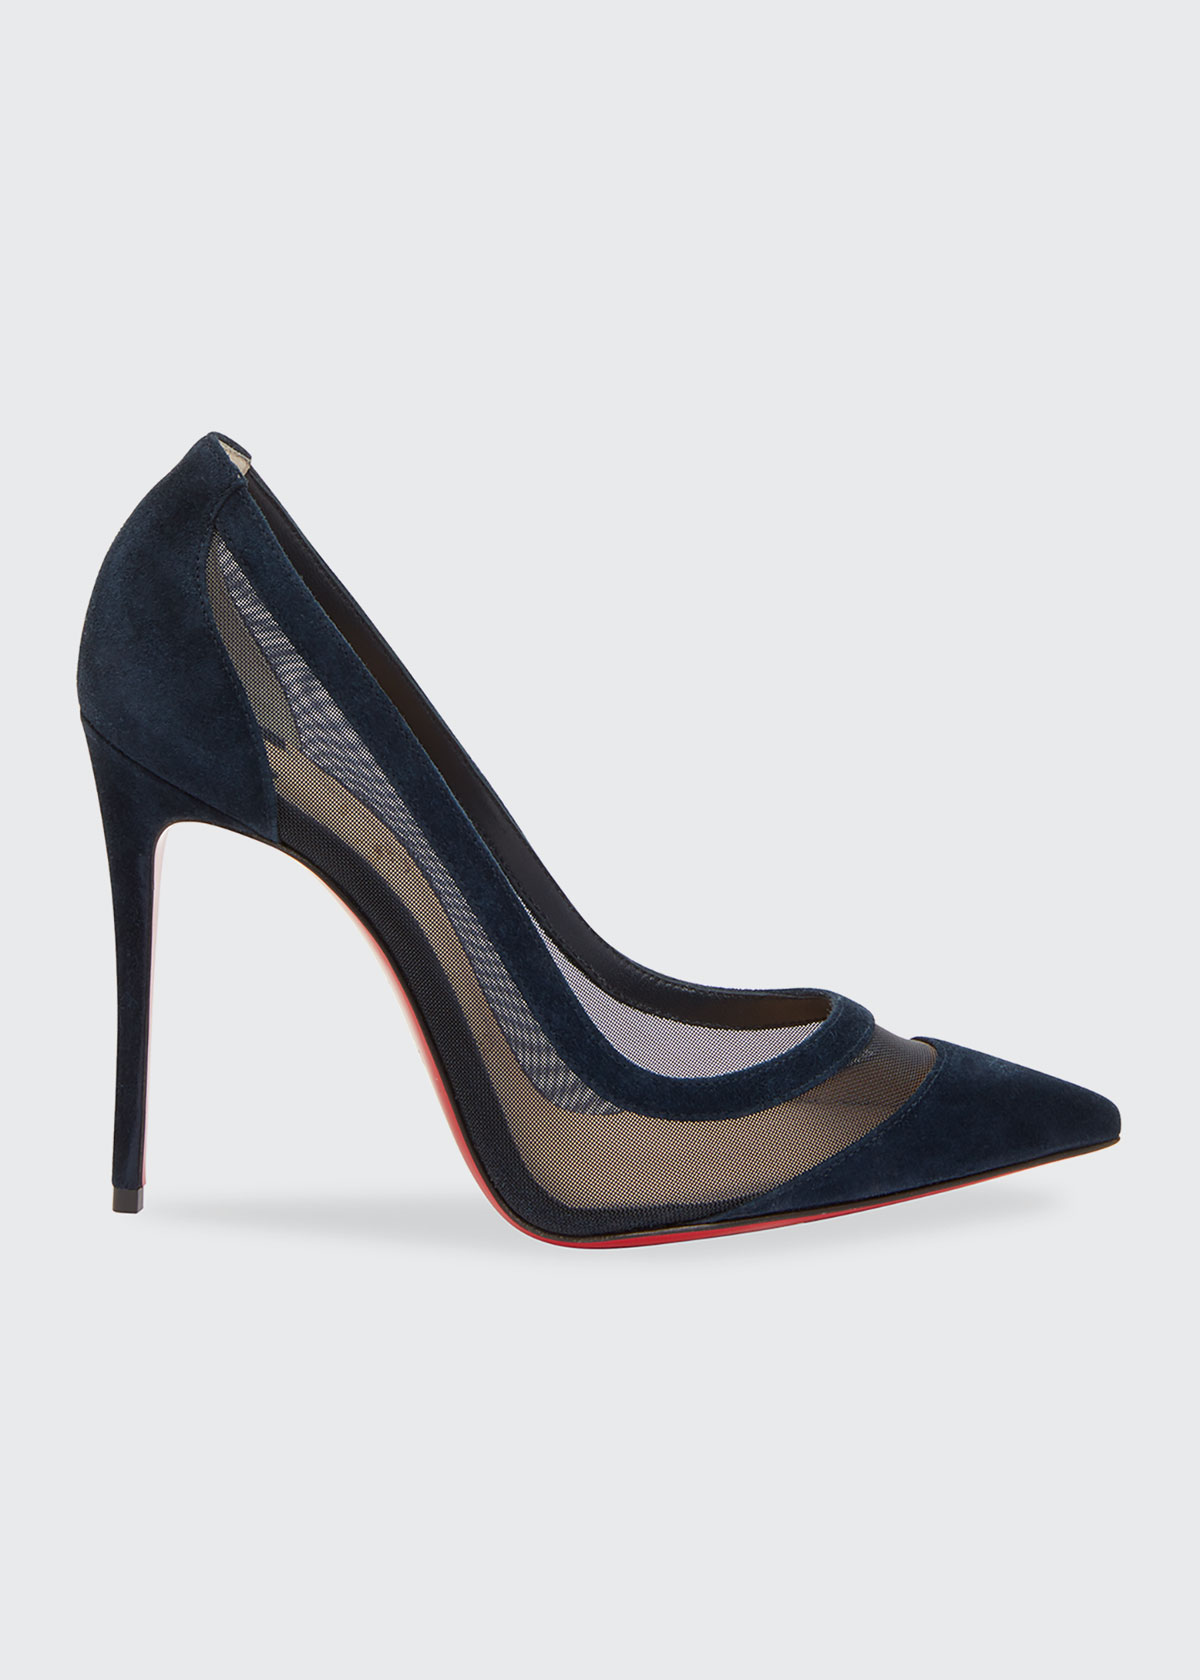 Christian Louboutin Pumps GALATIVI SUEDE AND MESH RED SOLE PUMPS